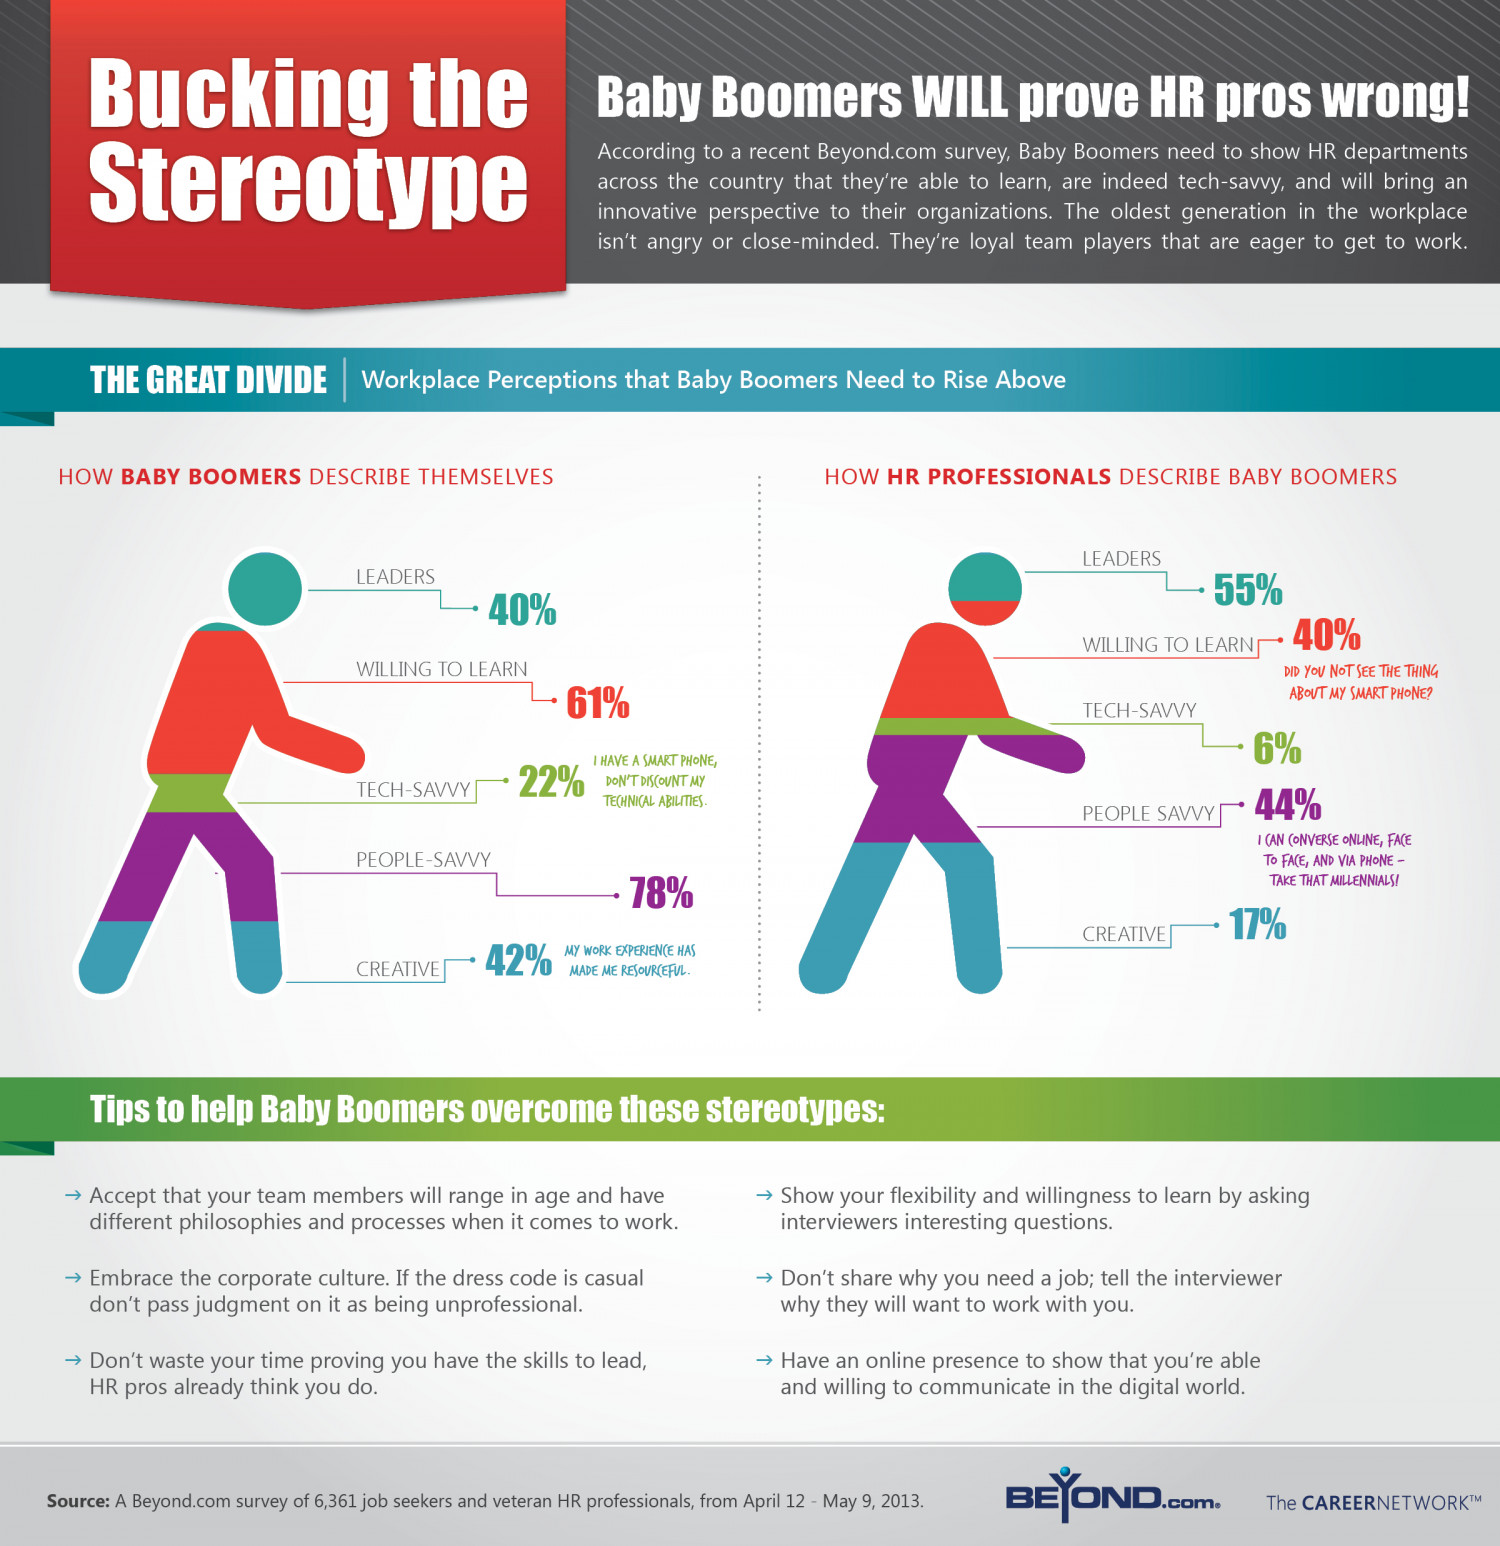 baby boomers generation y misconceptions Misconceptions about boomers may impact your bottom line - 05/16/2016 it seems like every day brings a new article with dos and don'ts for marketing to millennials.